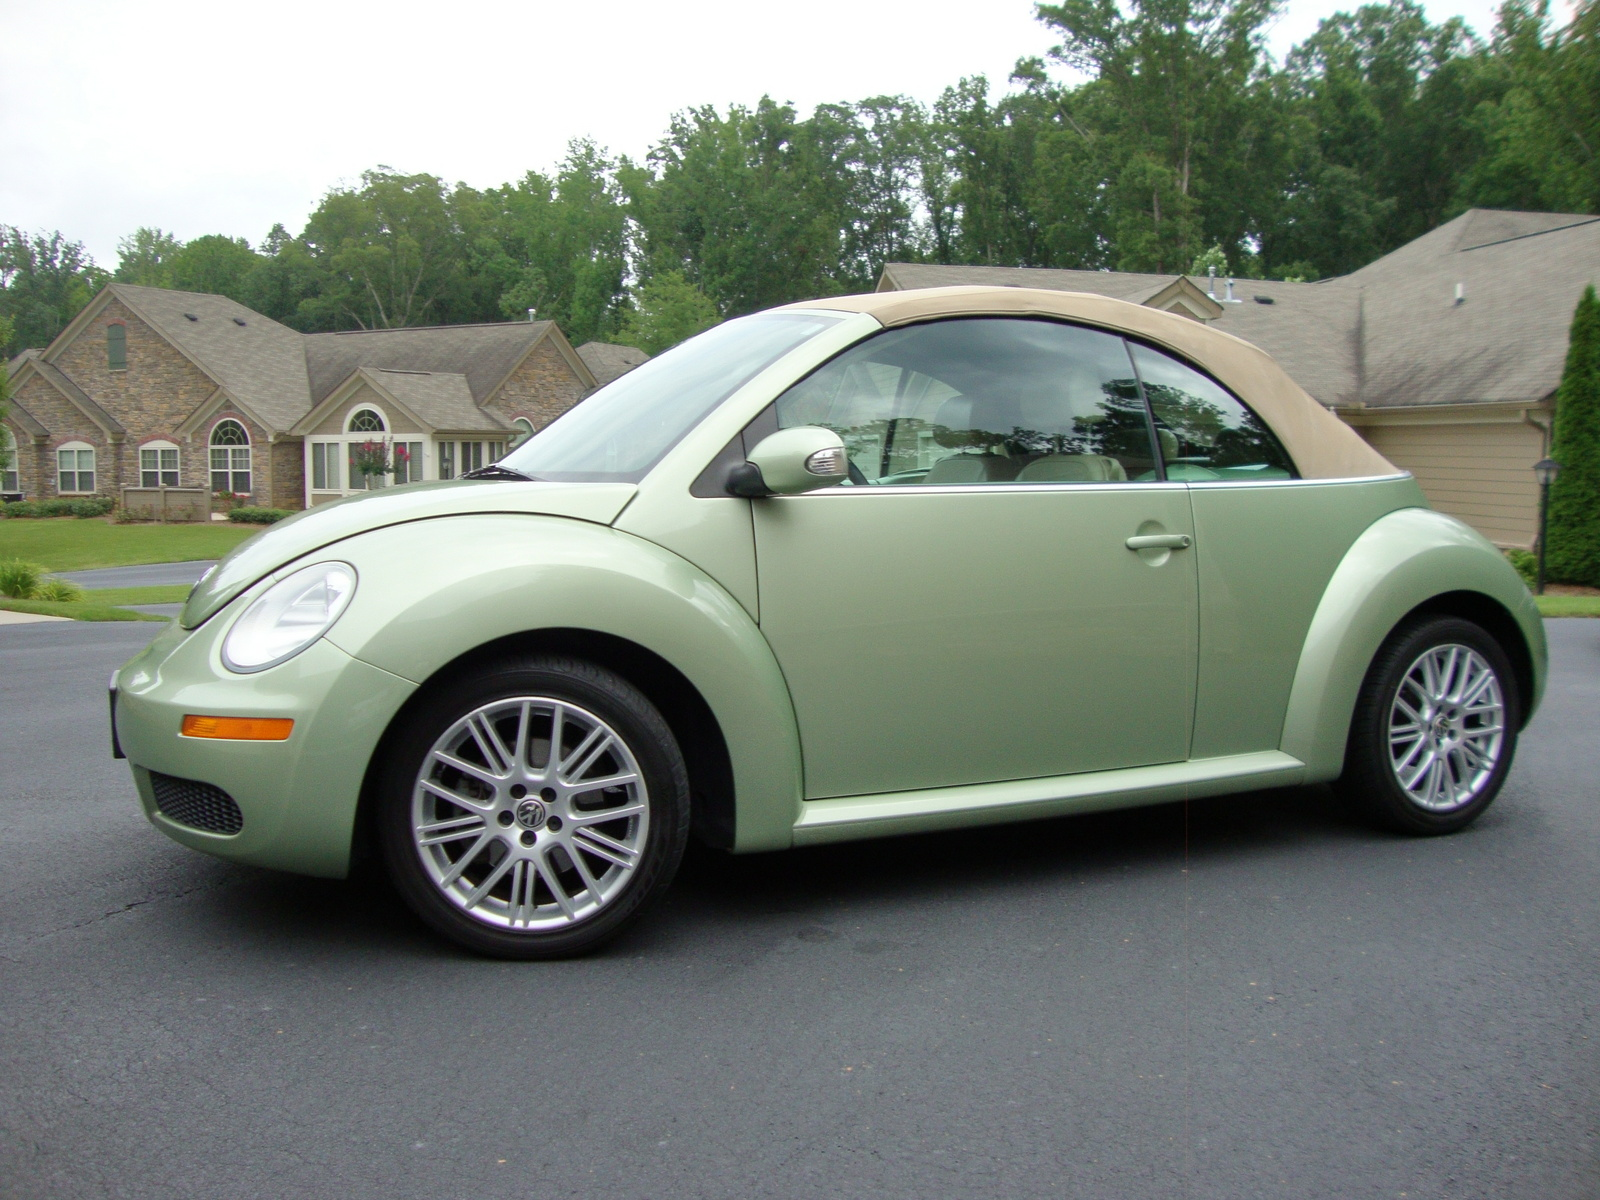 2007 volkswagen beetle pictures cargurus. Black Bedroom Furniture Sets. Home Design Ideas